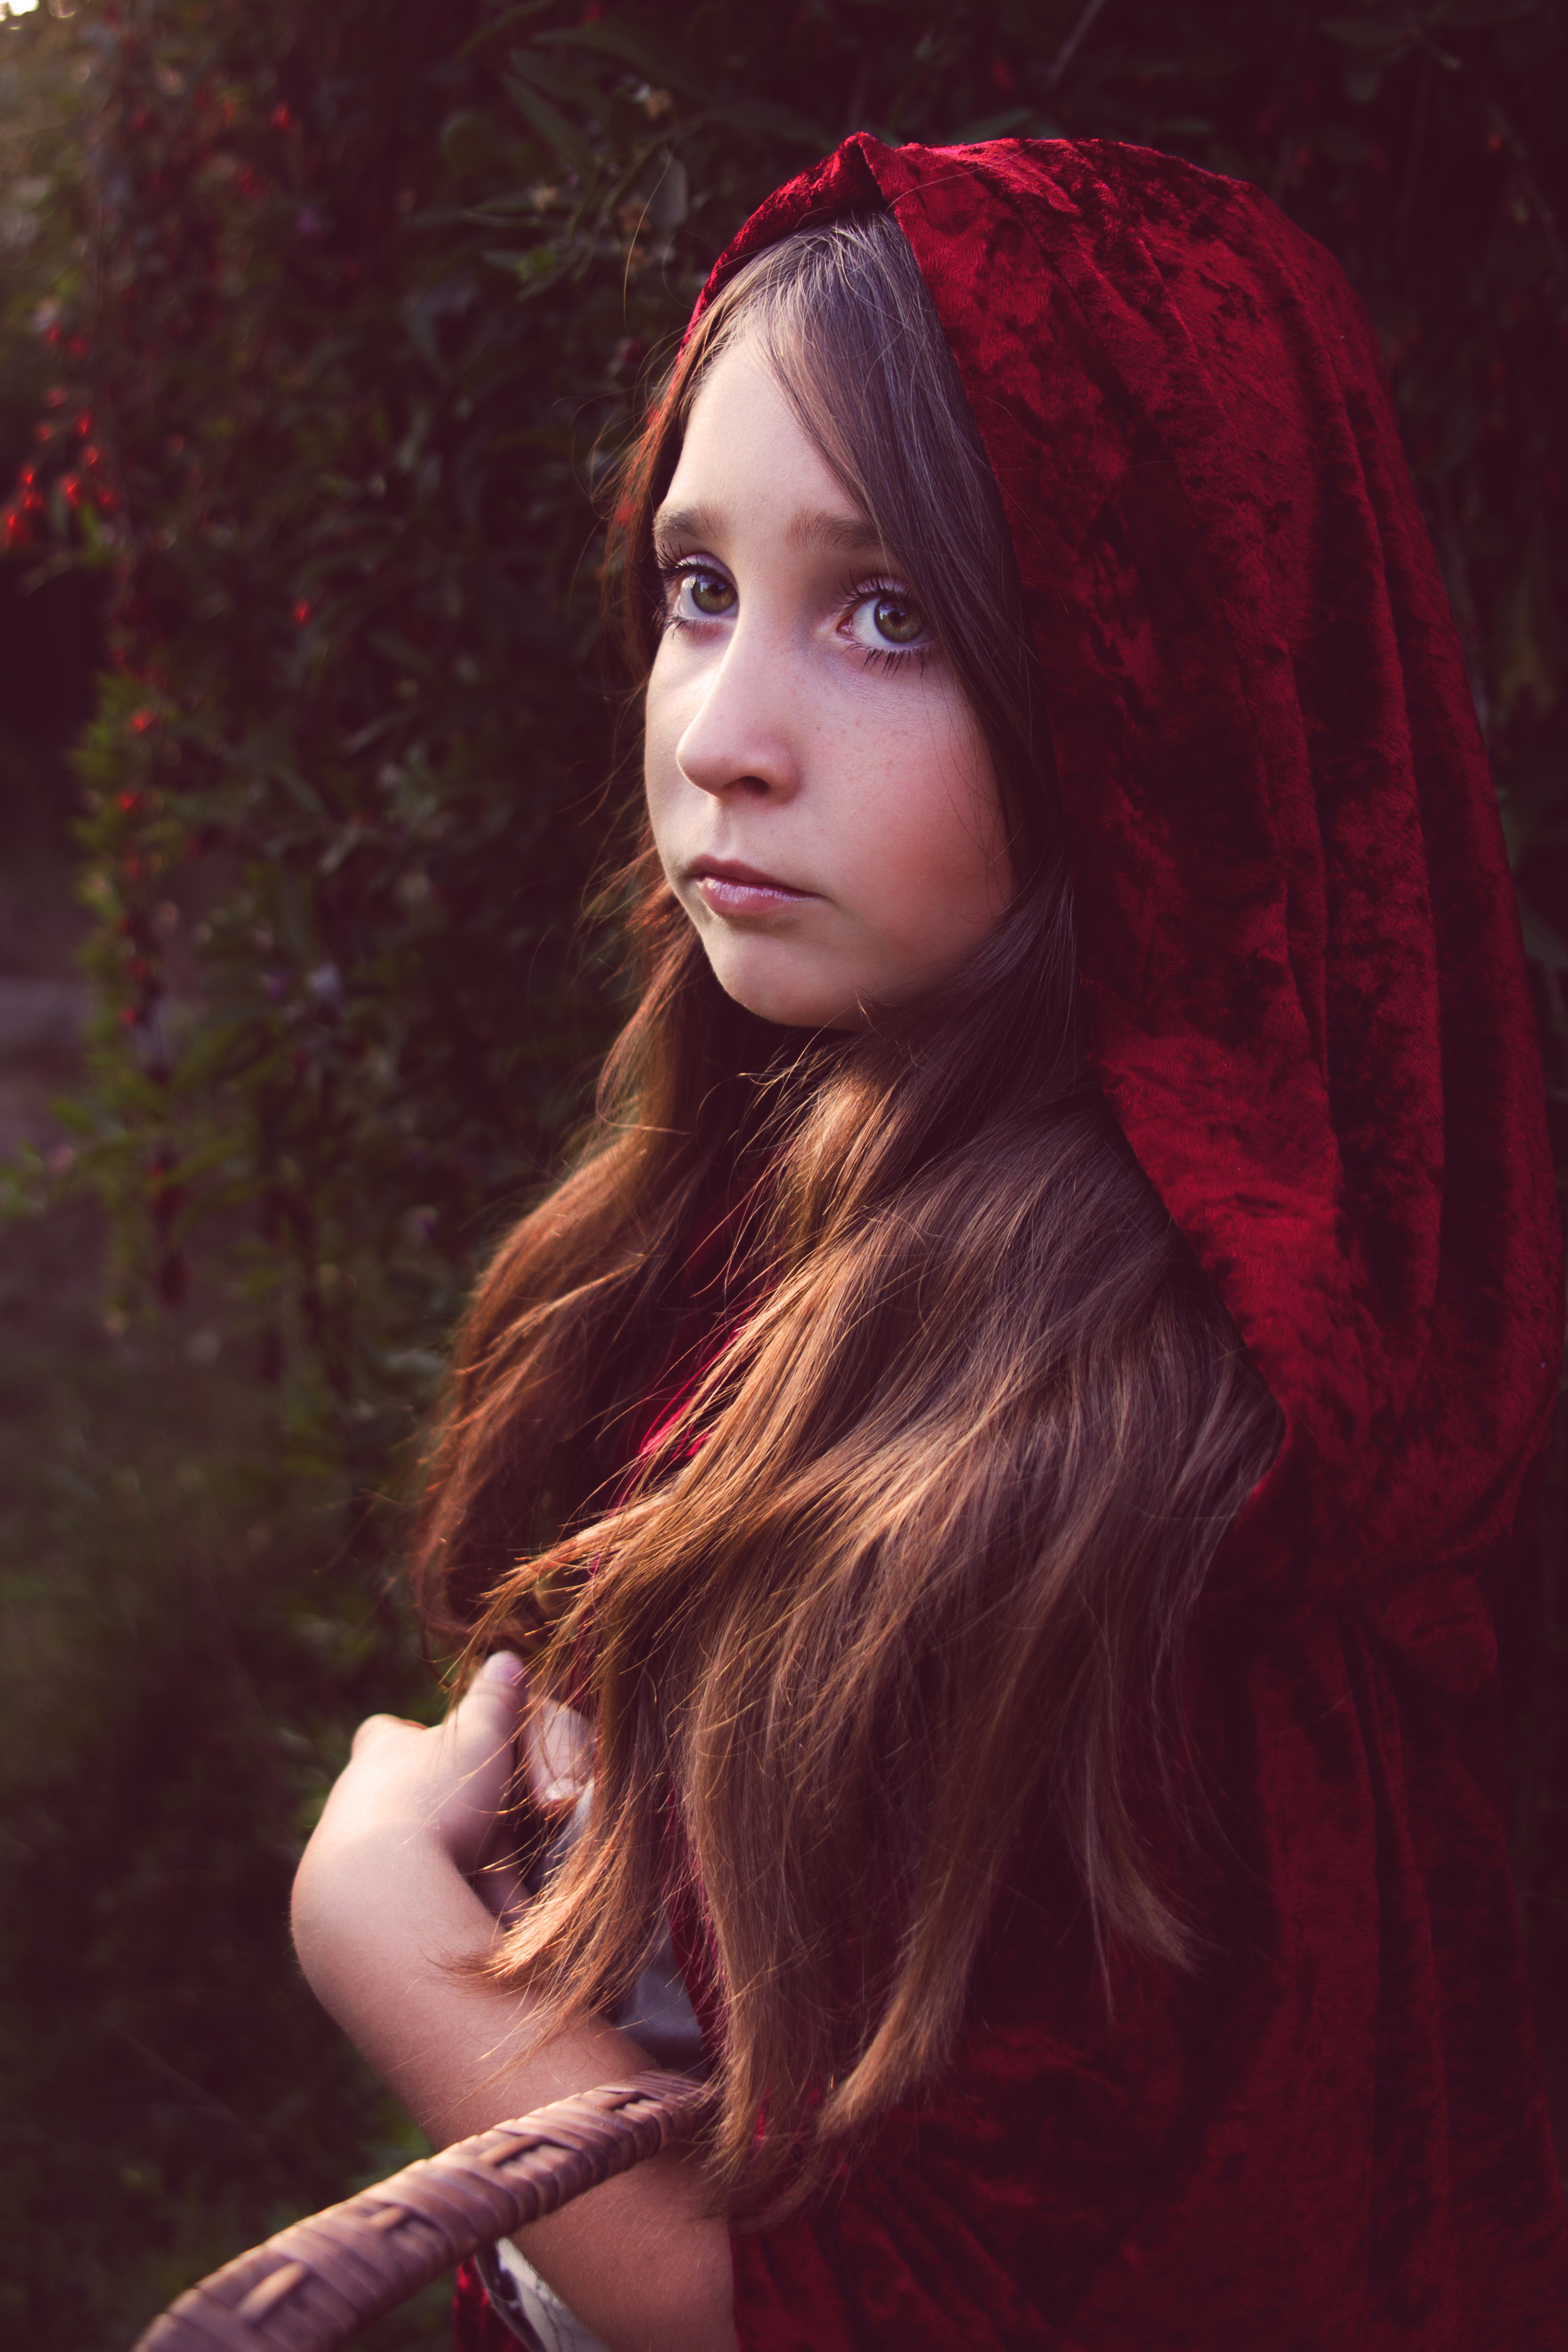 My niece Natalie as Little Red Riding Hood